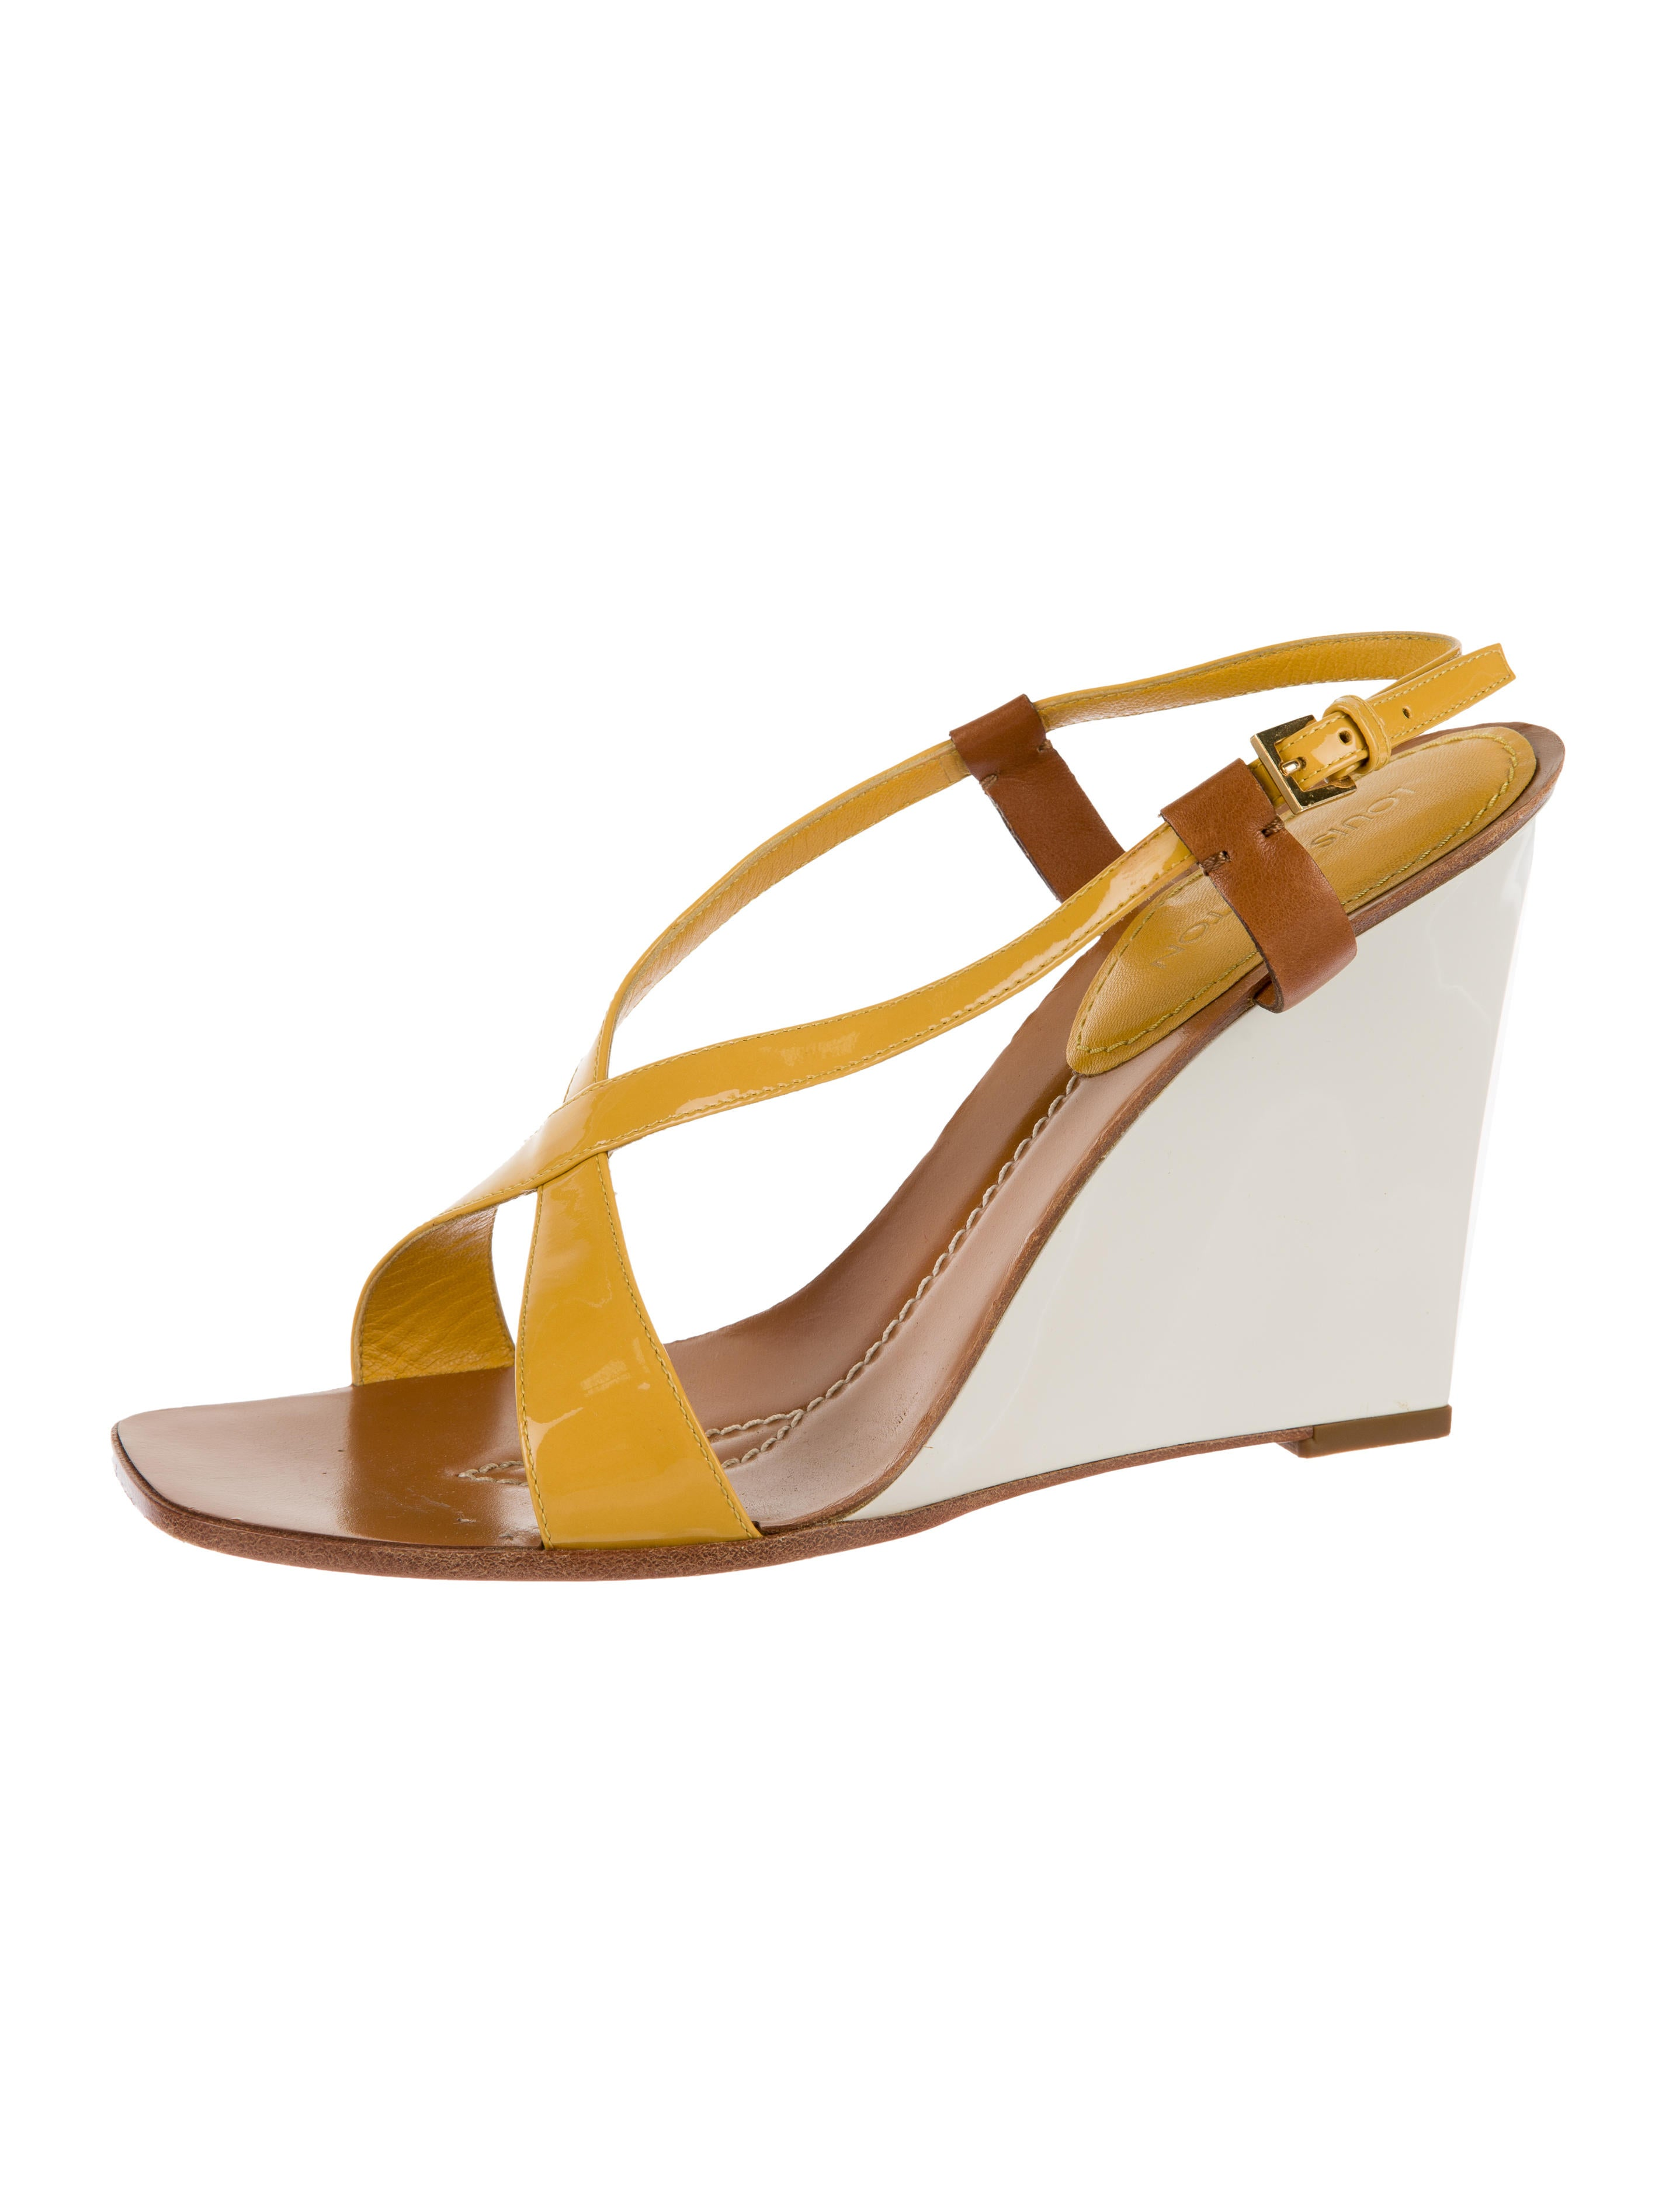 louis vuitton patent leather wedge sandals shoes